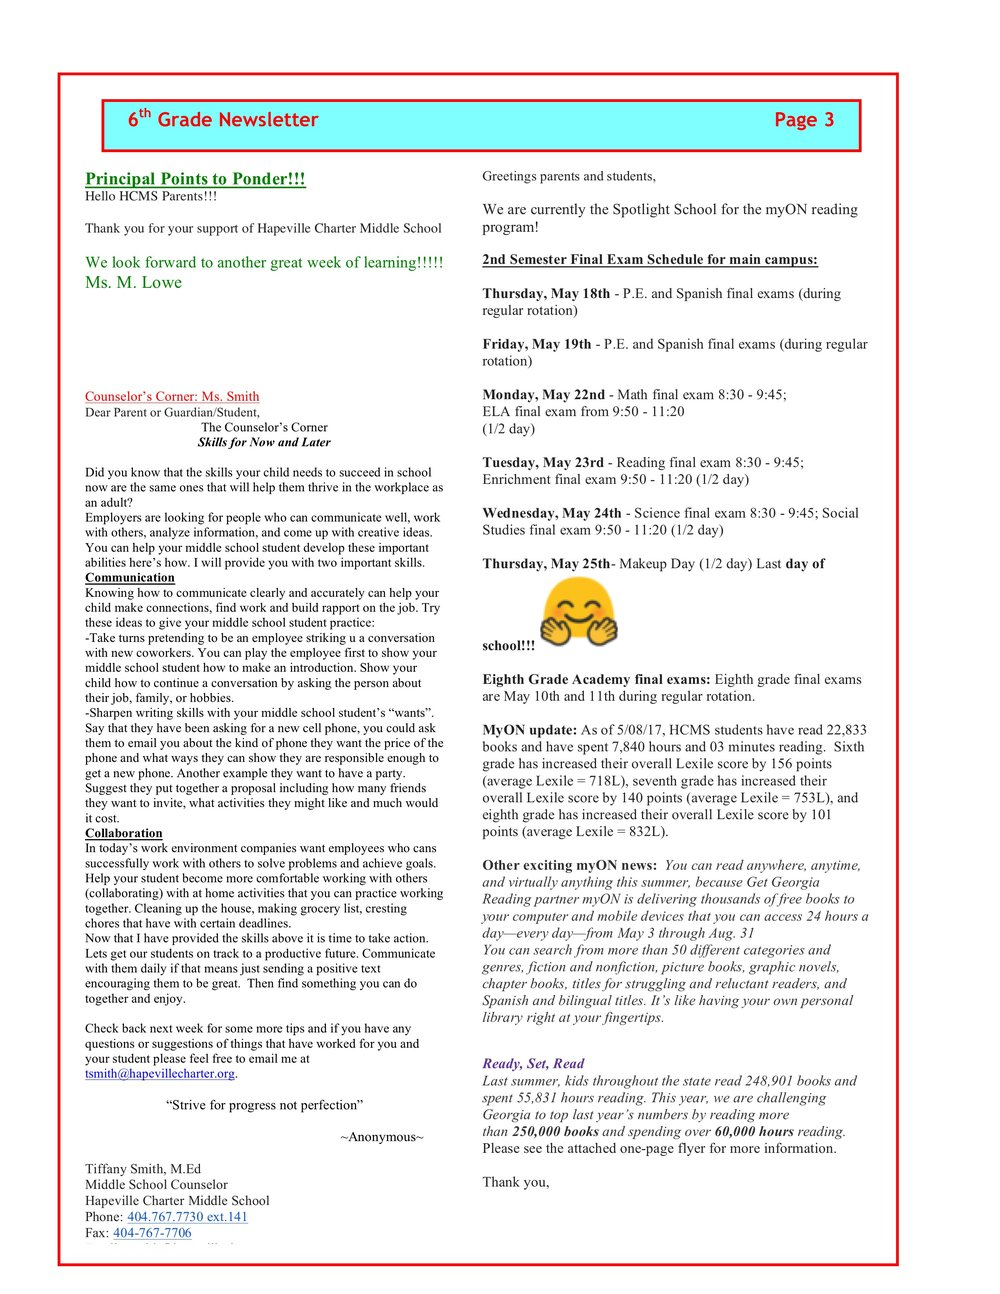 Newsletter Image6th Grade Newsletter 5-16-2017 3.jpeg